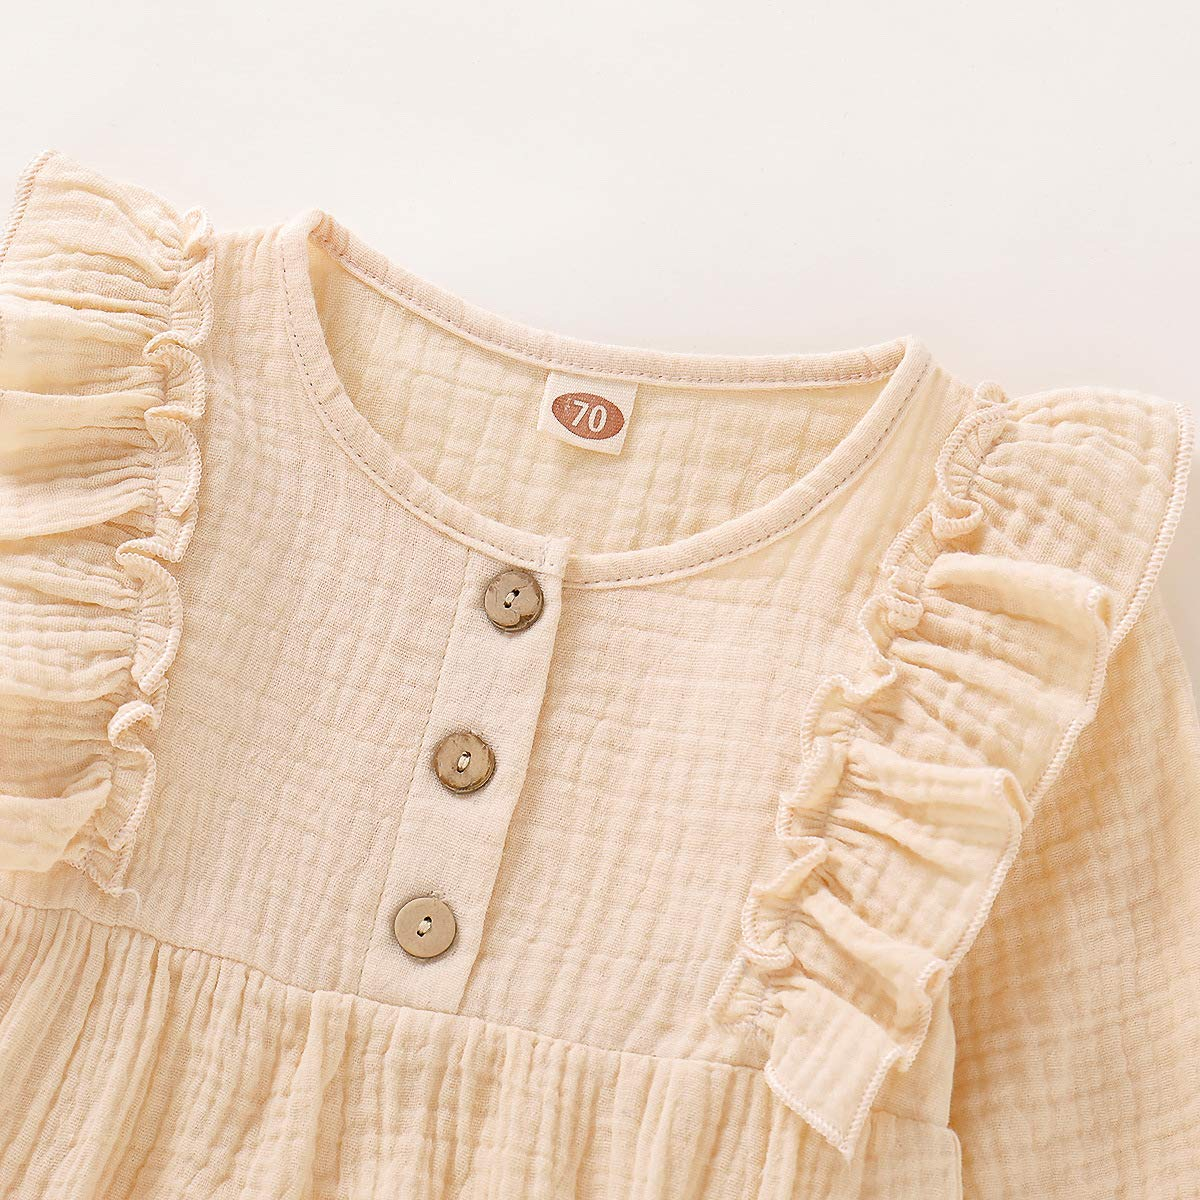 fhutpw Baby Girls Romper Bodysuit Jumpsuit Solid Color Long Sleeve Ruffled Newborn Autumn Outfit